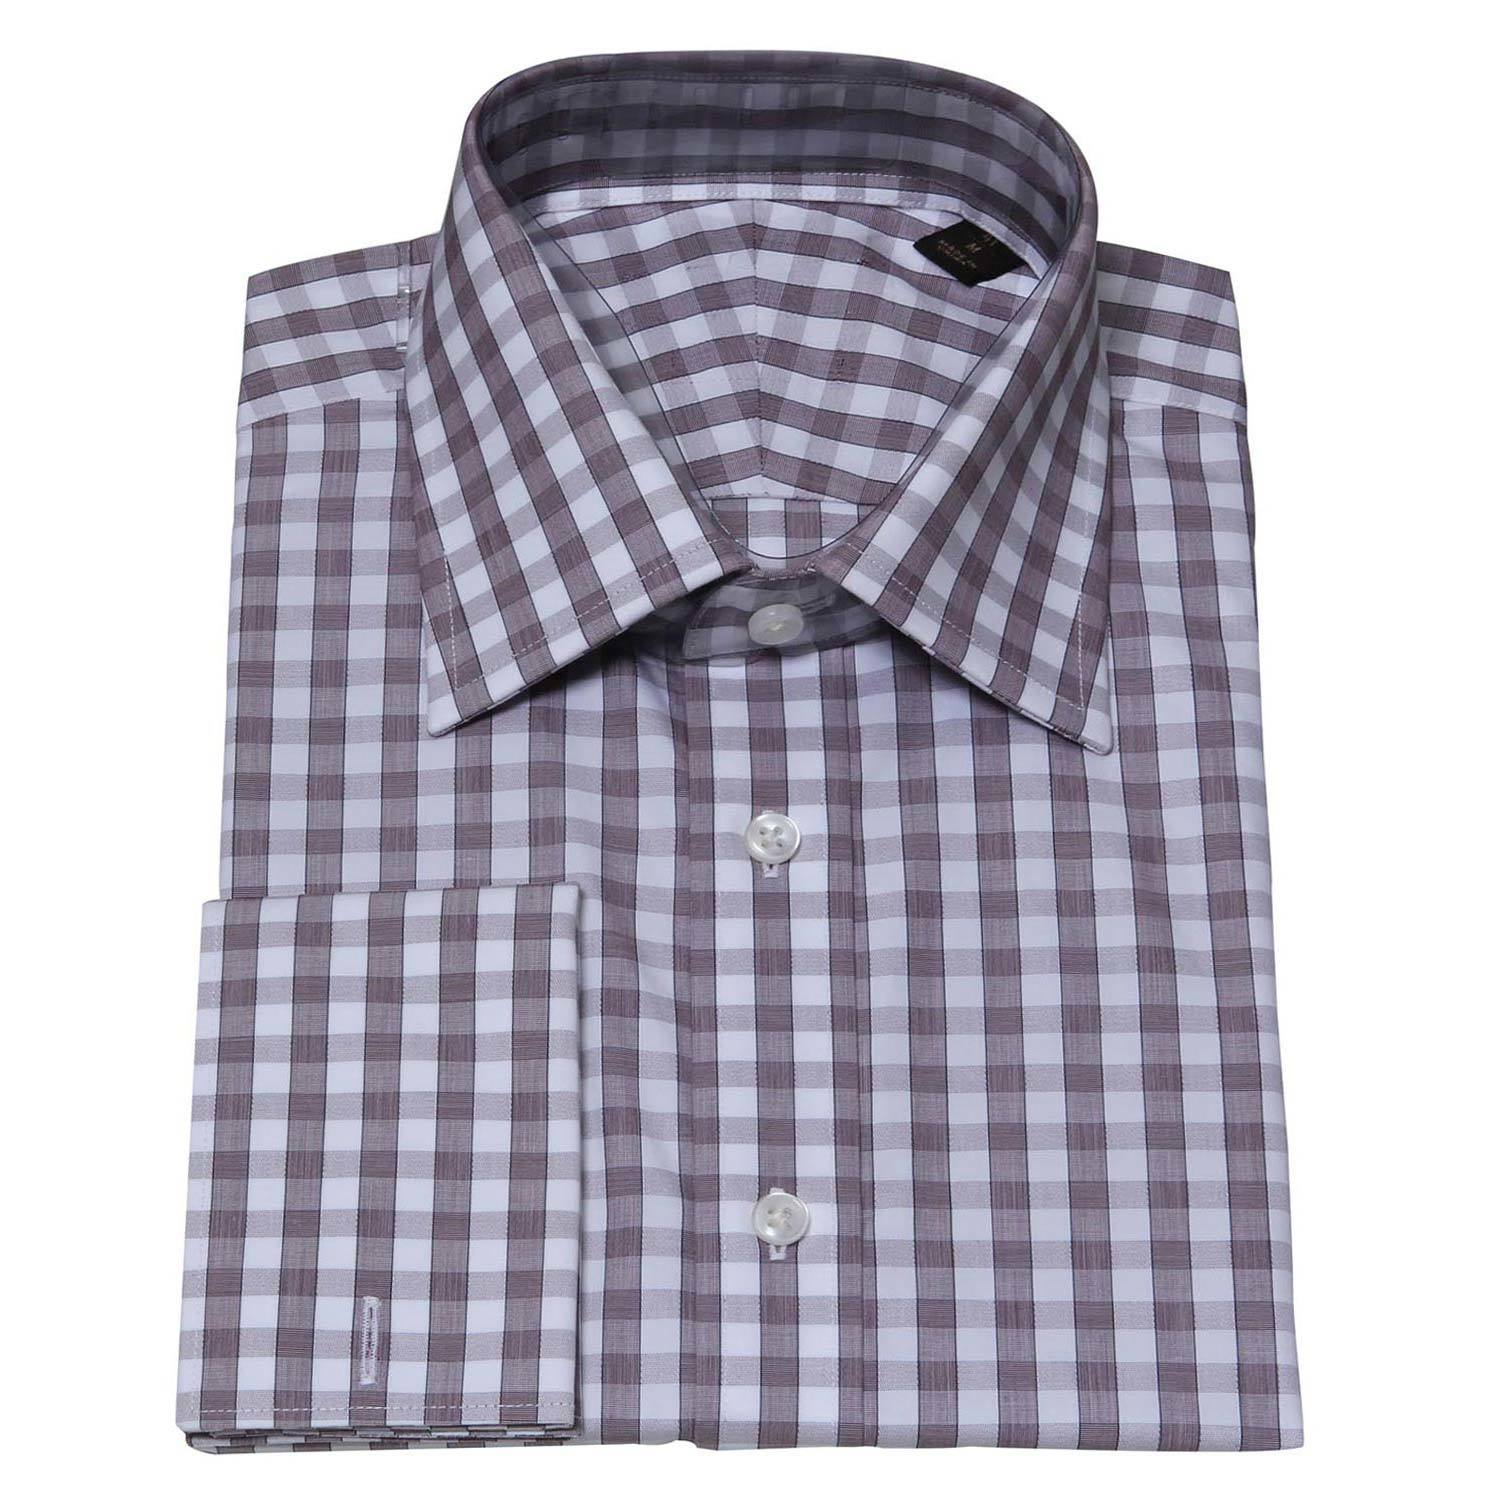 China men s long sleeve check spread collar dress shirt for Men s spread collar shirts